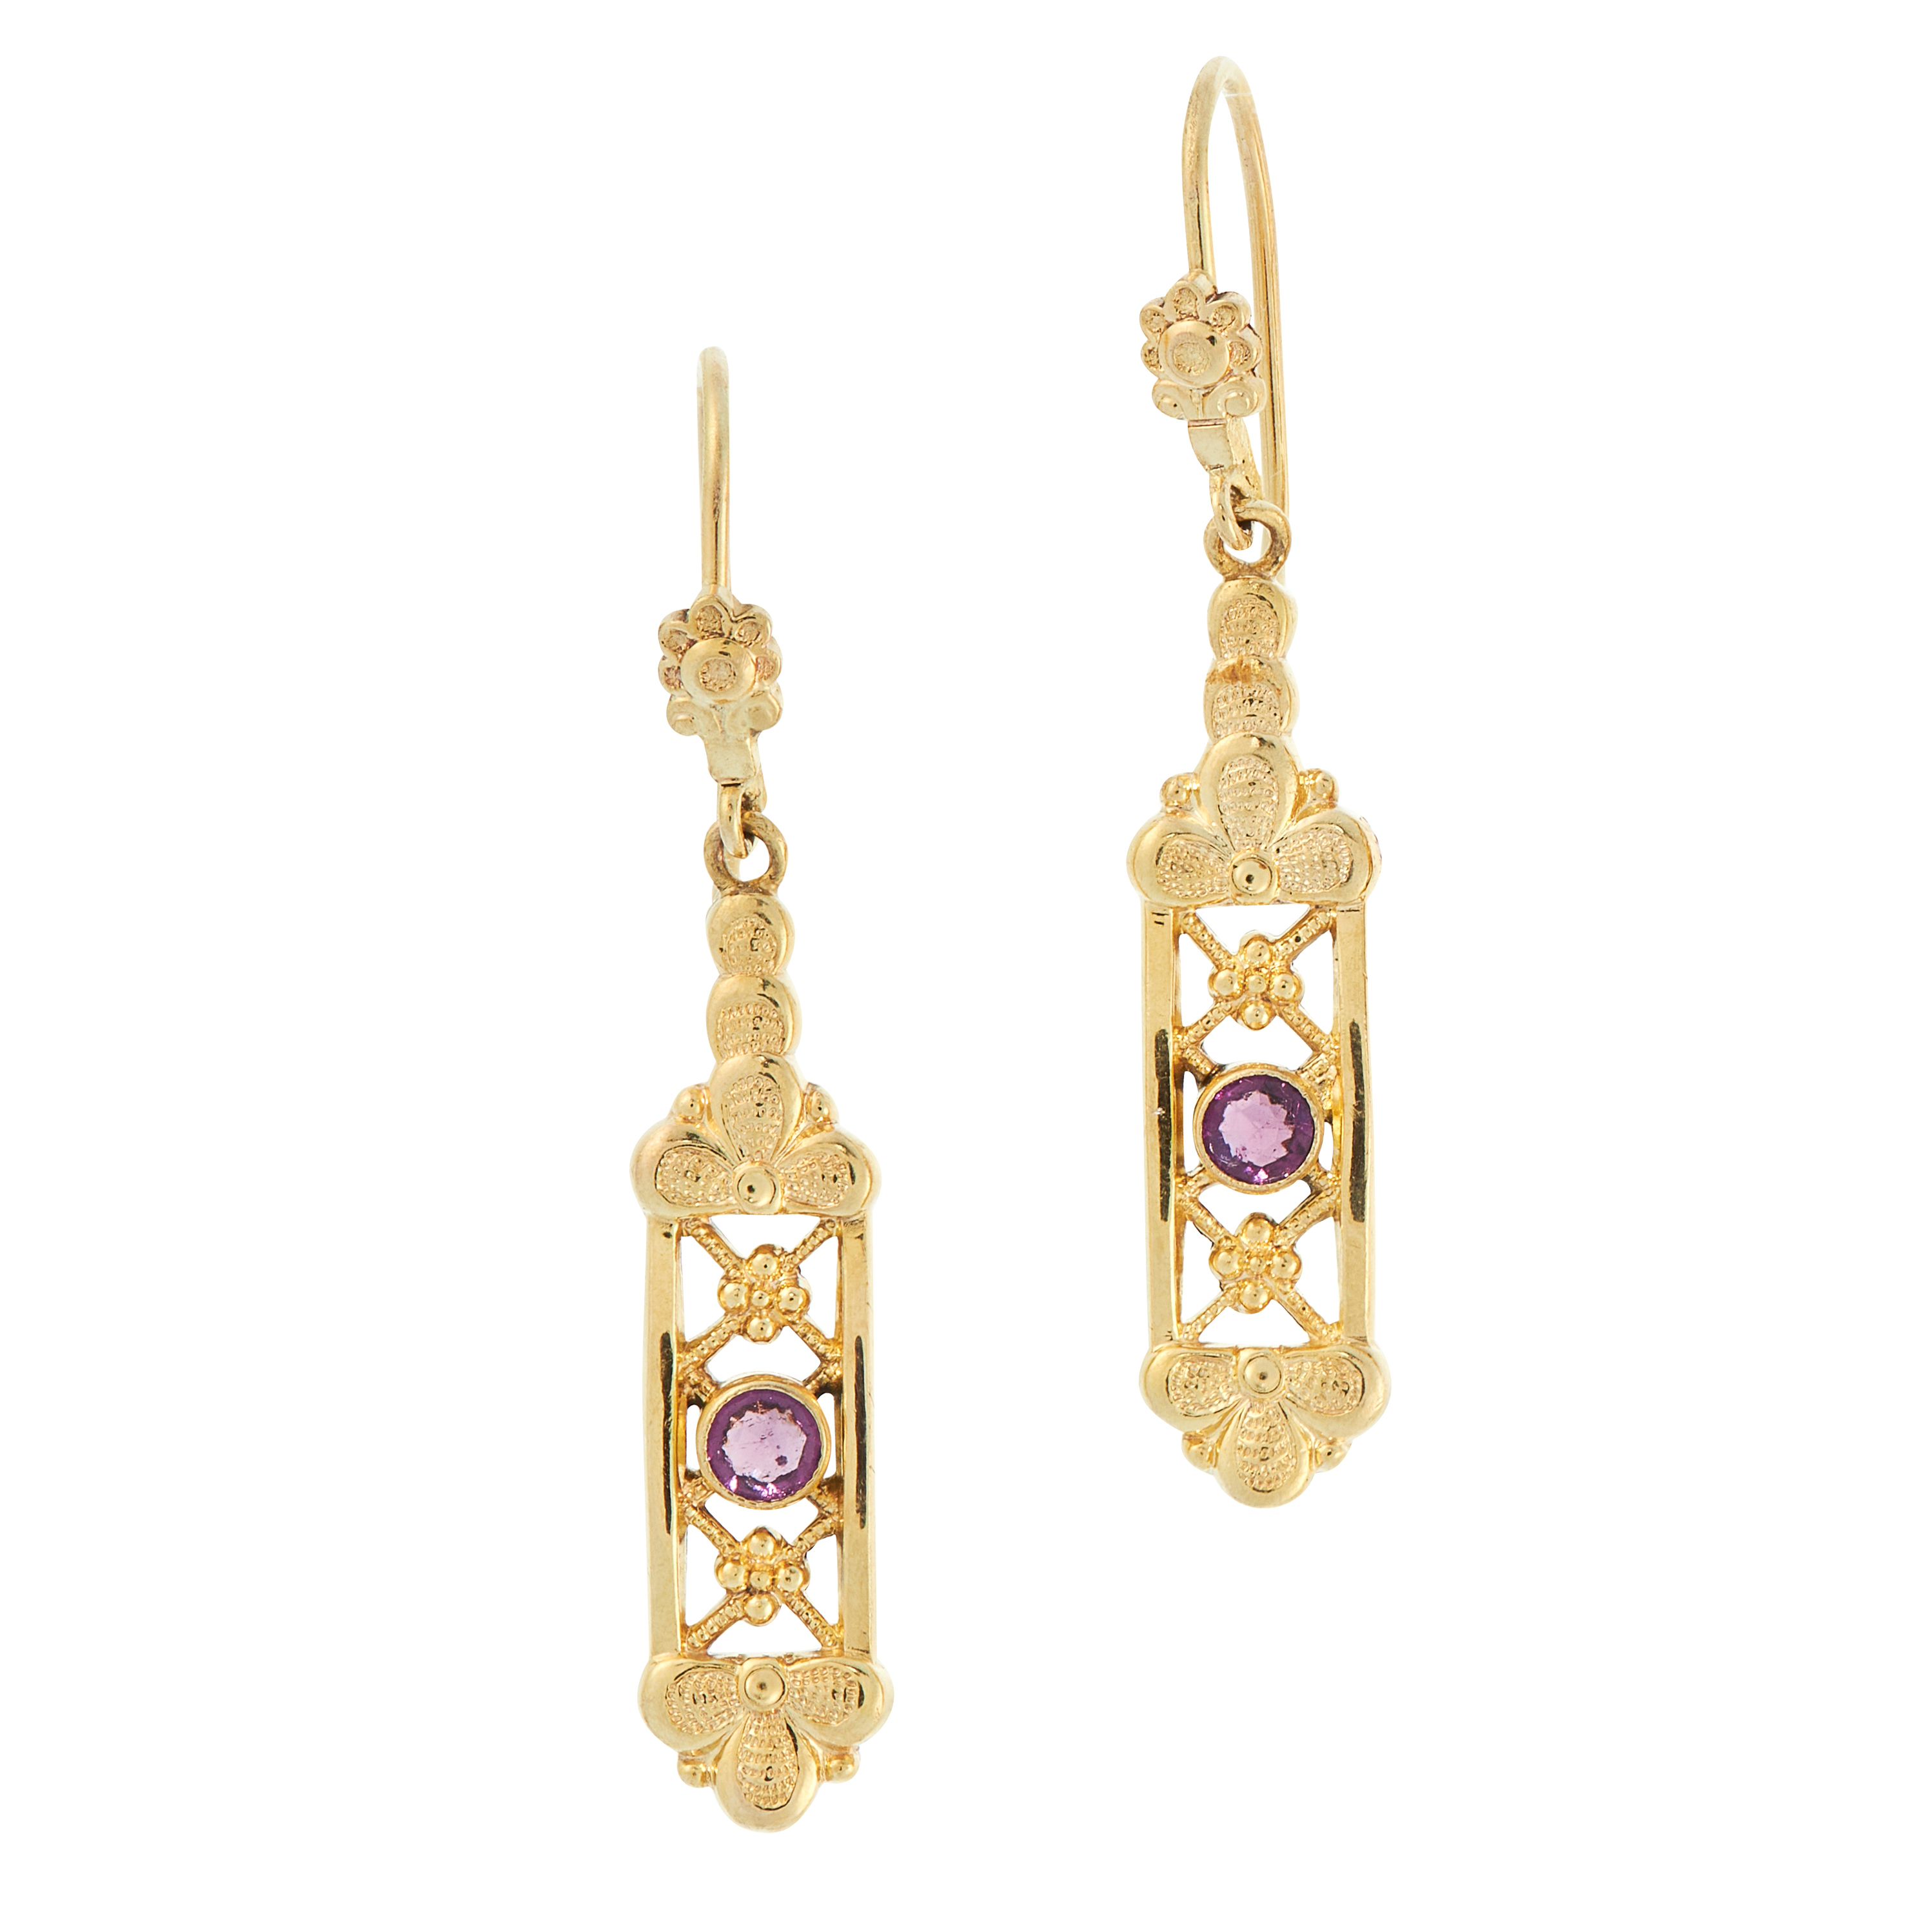 A PAIR OF AMETHYST DROP EARRINGS in yellow gold, each set with a round cut amethyst accented by